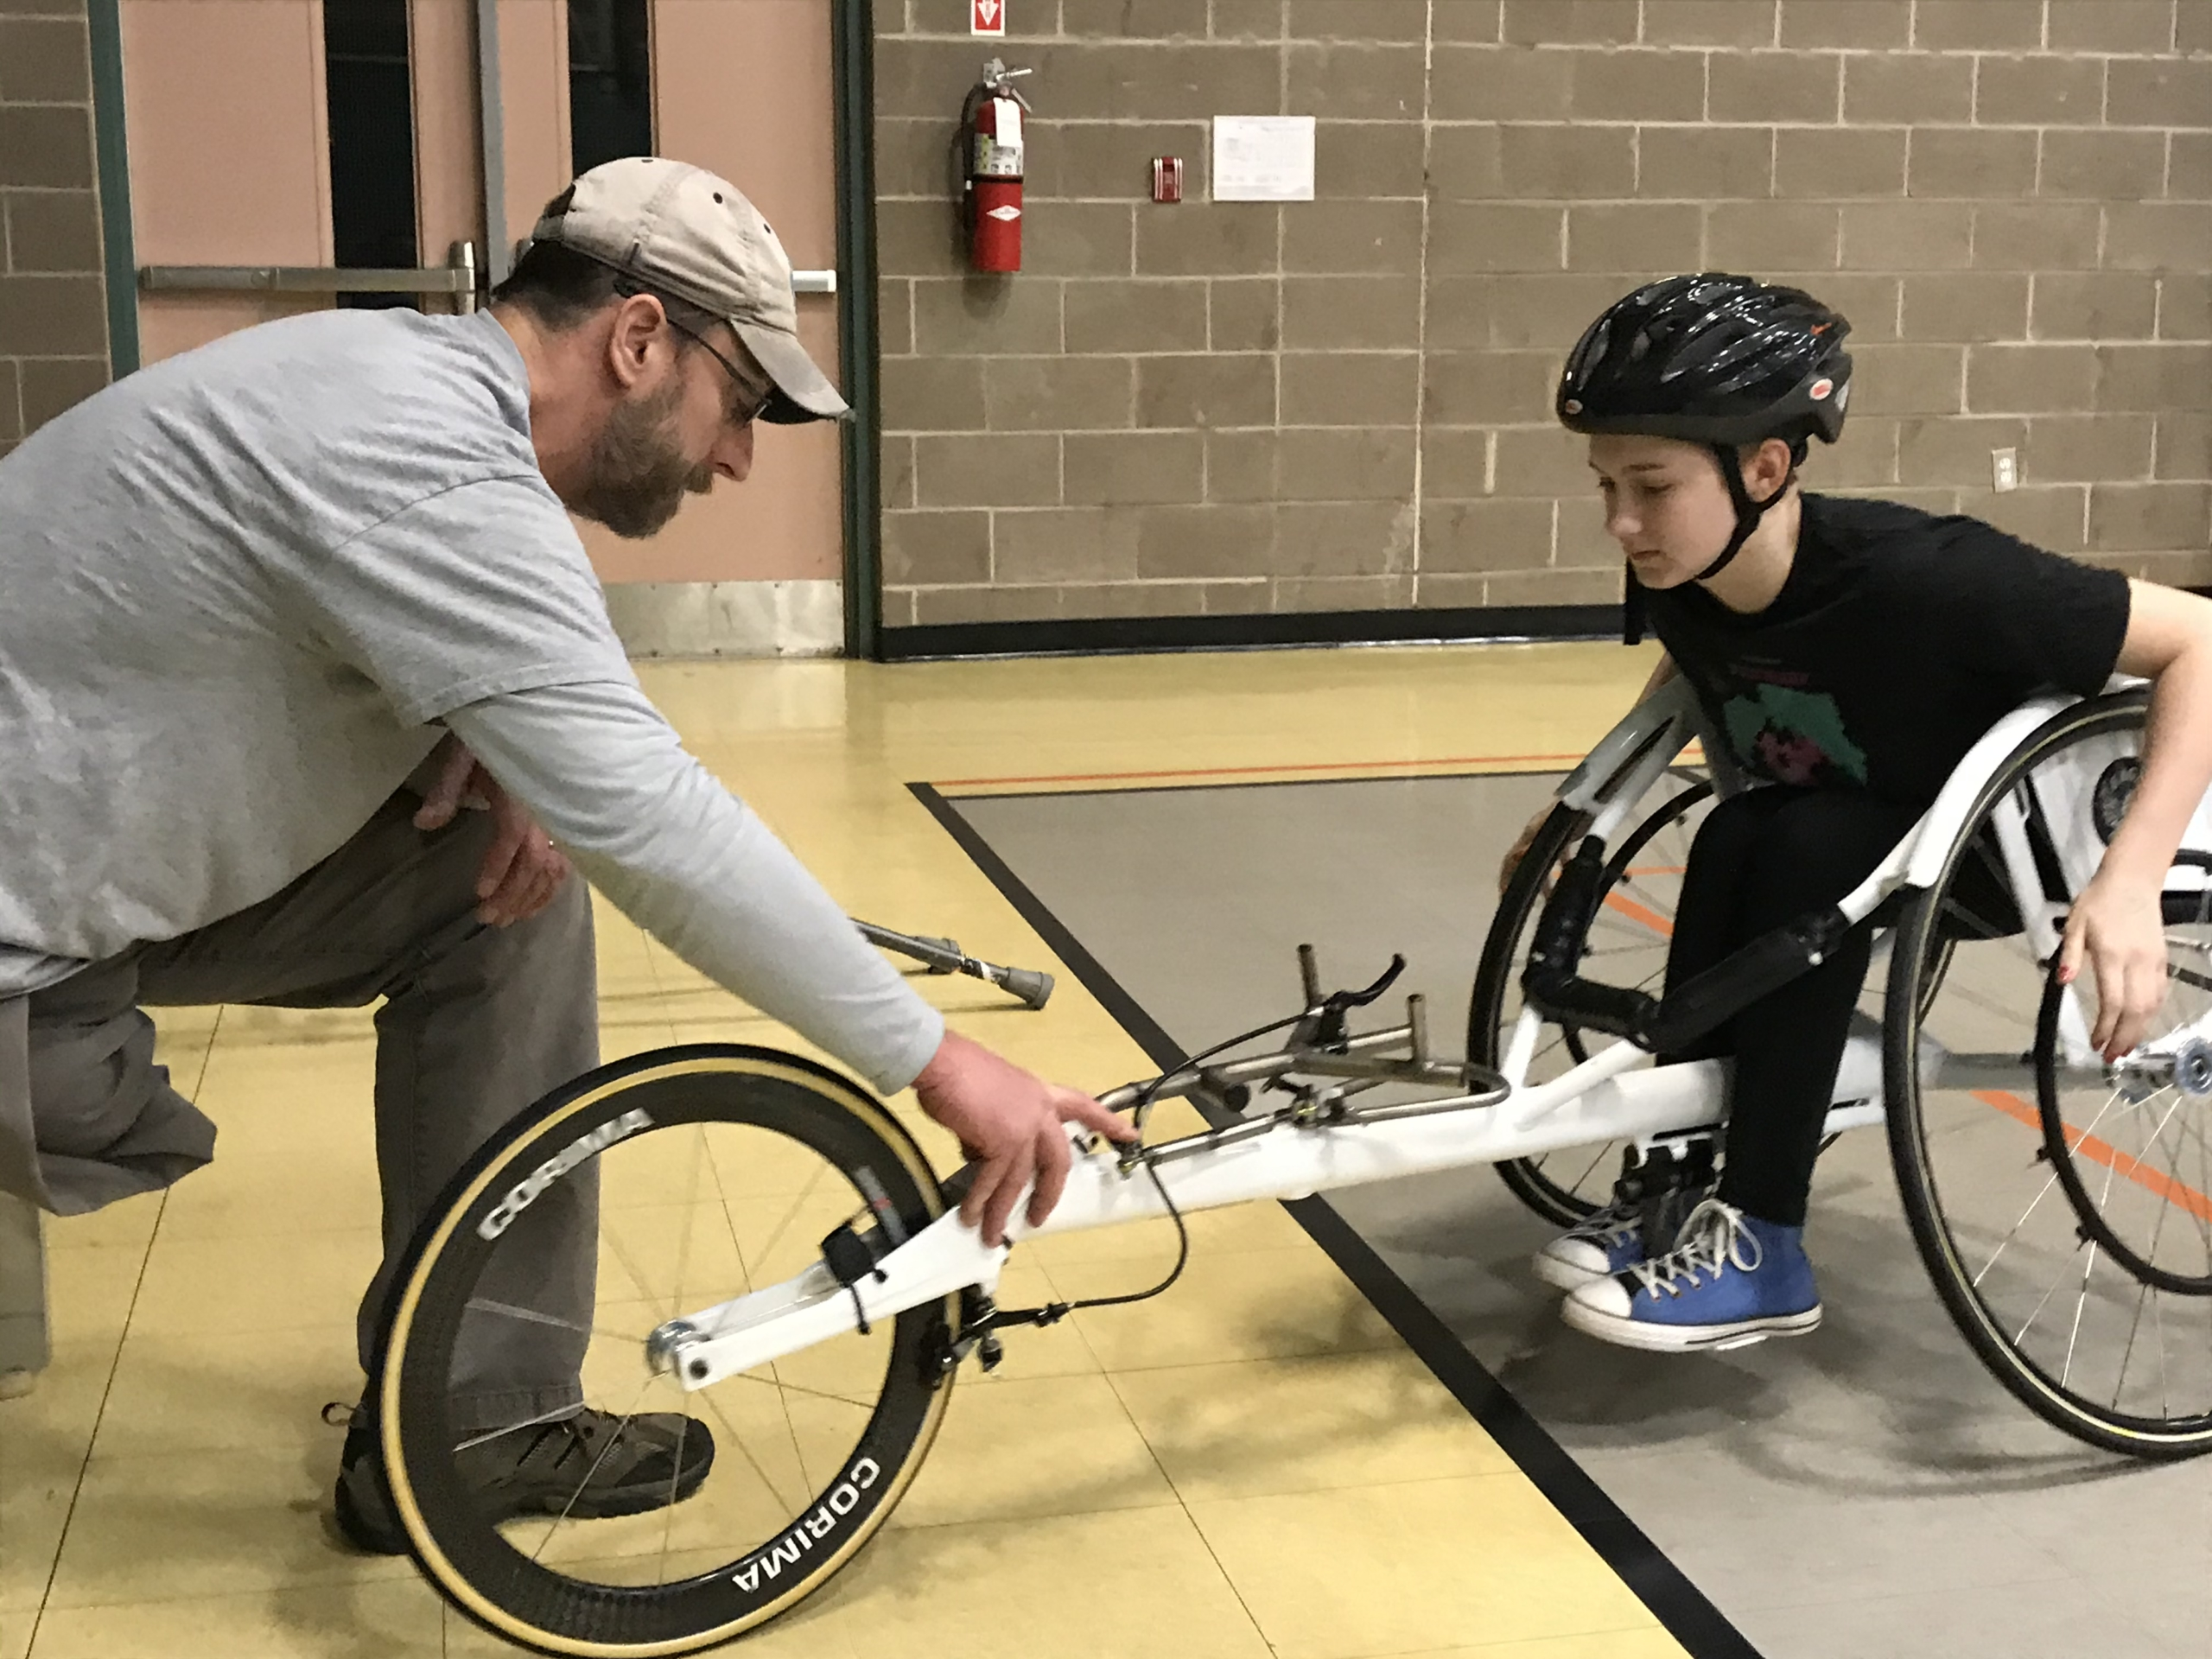 Wes Hall assisting young athlete find balance in wheelchair racing chair. Athlete is sitting opposite Wes with hands on rim.